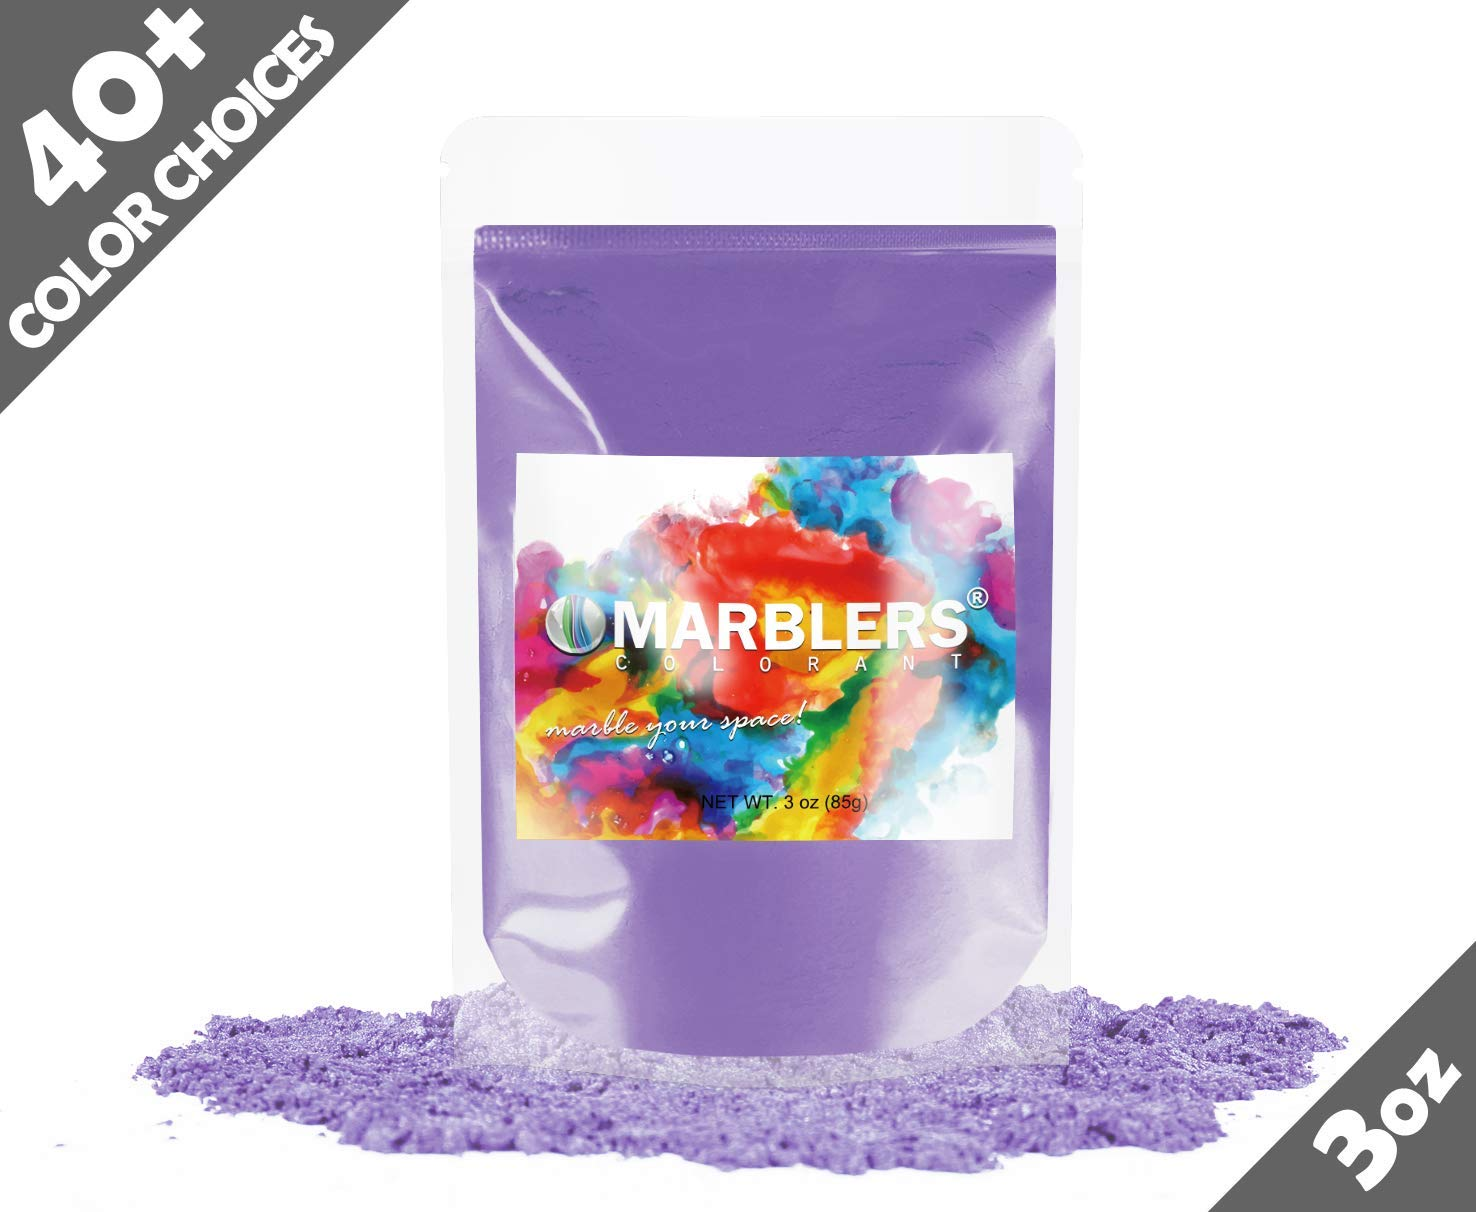 Marblers Powder Colorant 3oz (85g) [Bright Violet] | Pearlescent Pigment | Tint | Pure Mica Powder for Resin | Dye | Non-Toxic | Great for Epoxy, Soap, Nail Polish, Cosmetics and Bath Bombs